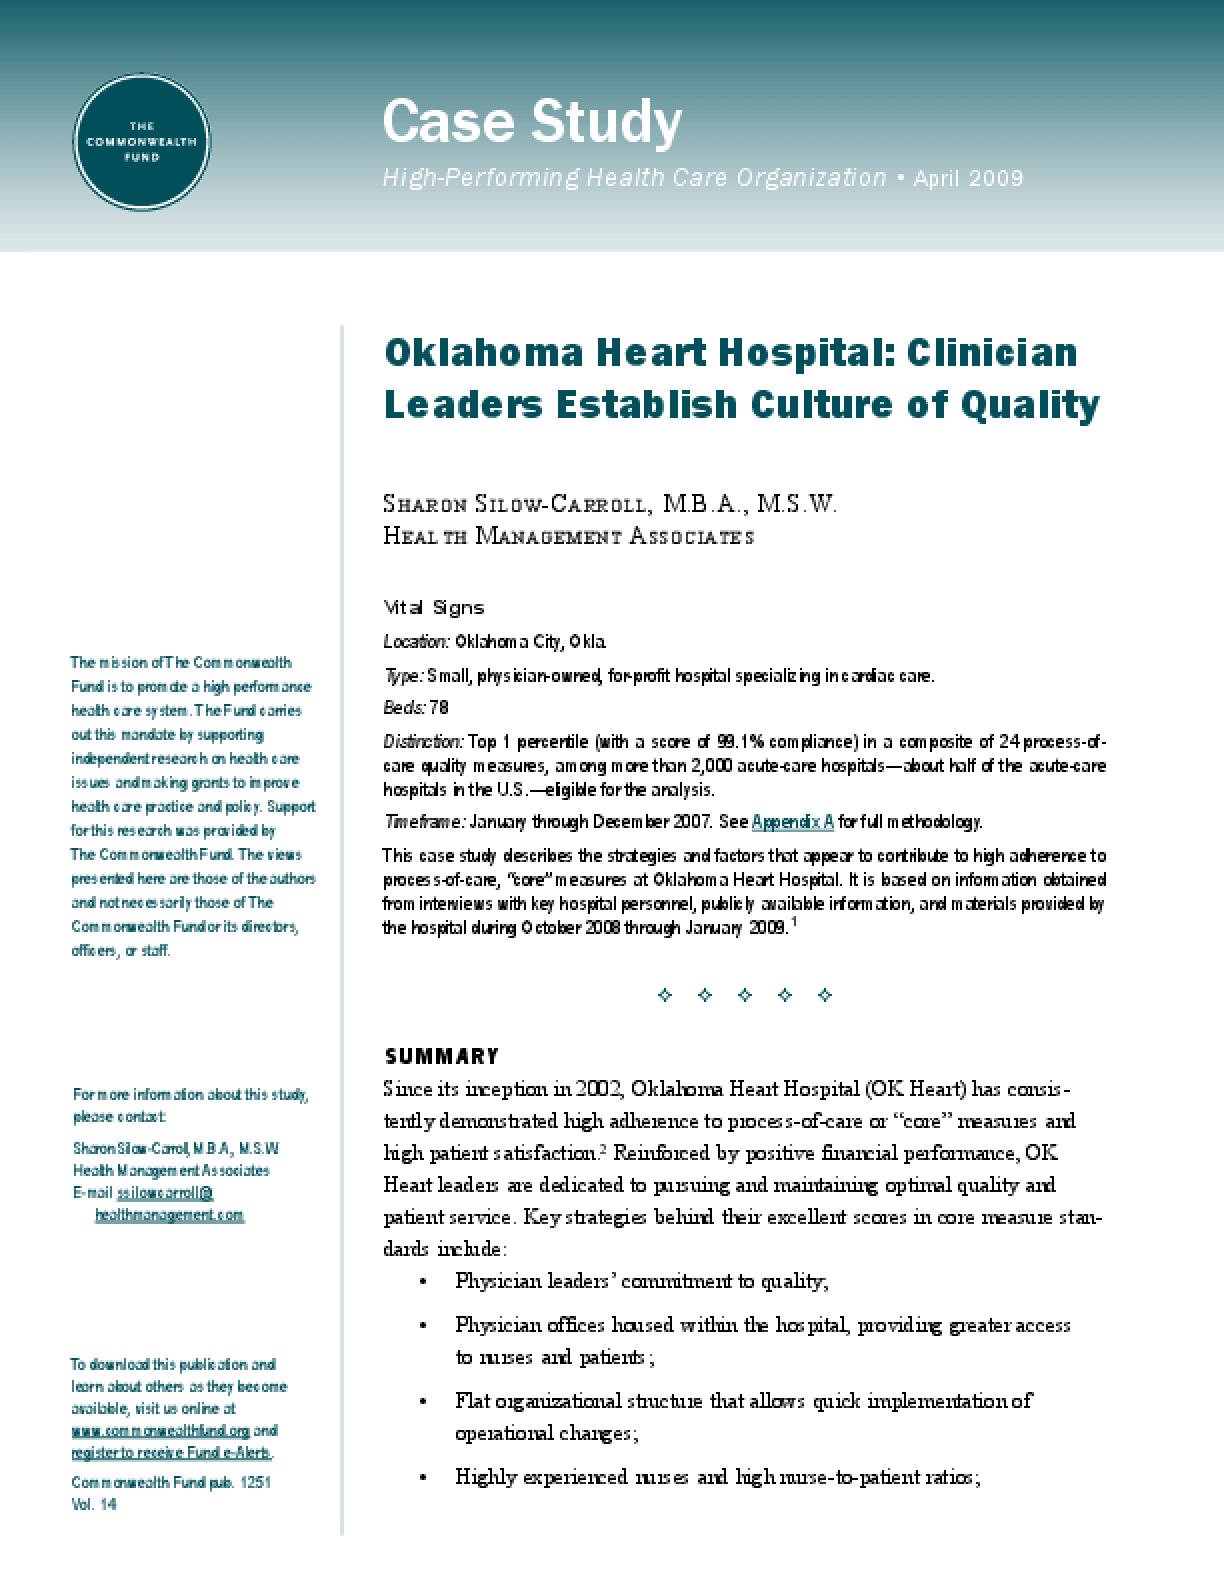 Oklahoma Heart Hospital: Clinician Leaders Establish Culture of Quality